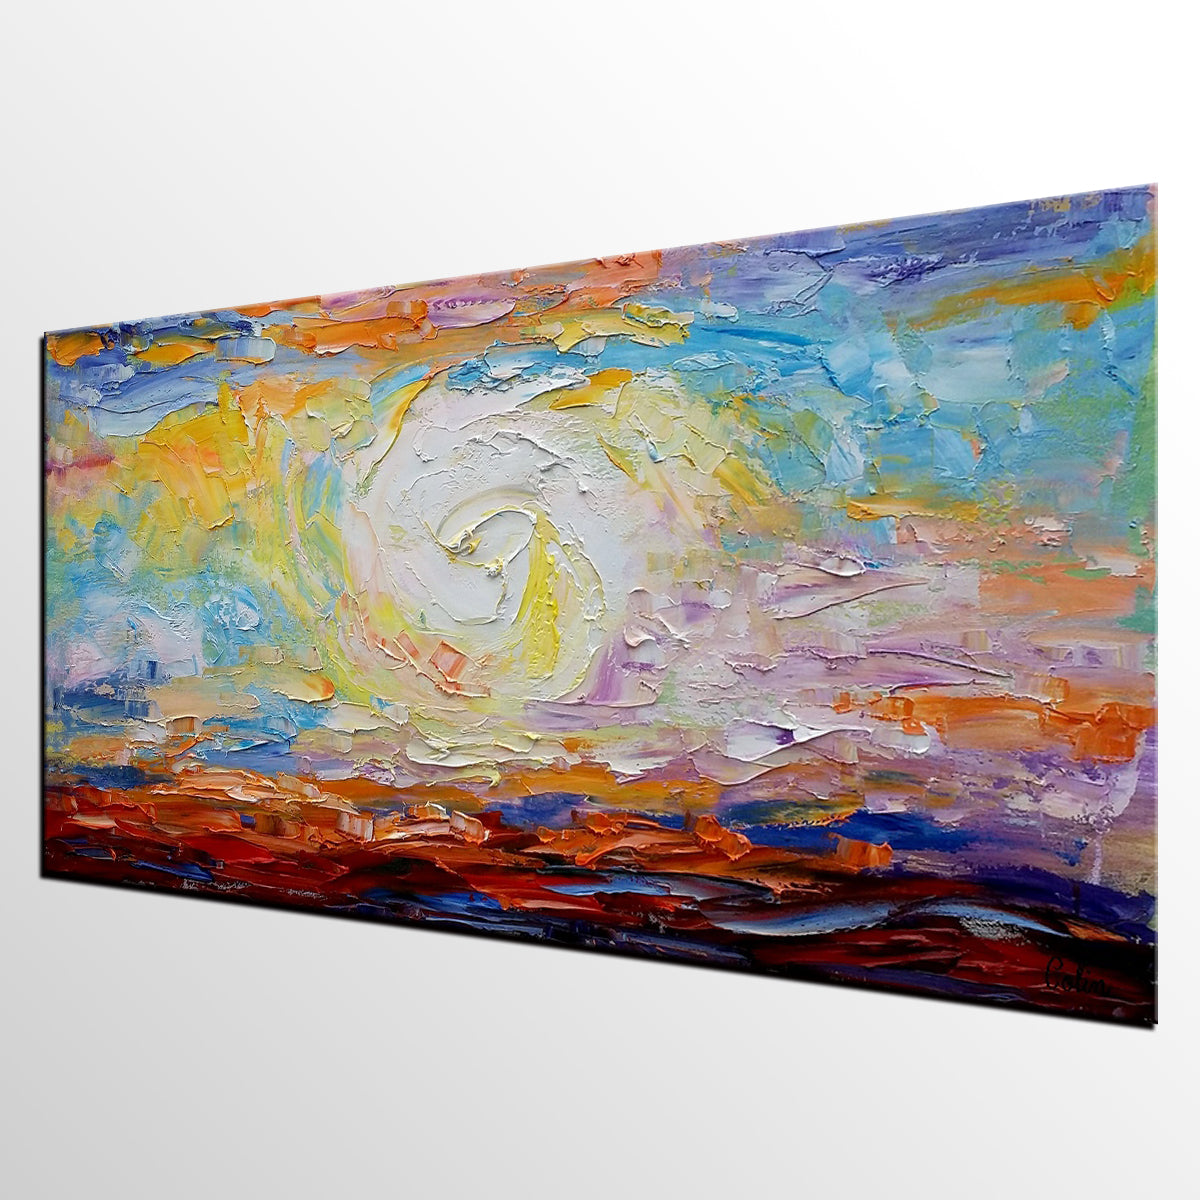 Large Modern Painting, Canvas Art, Wall Art, Abstract Painting, Modern Art